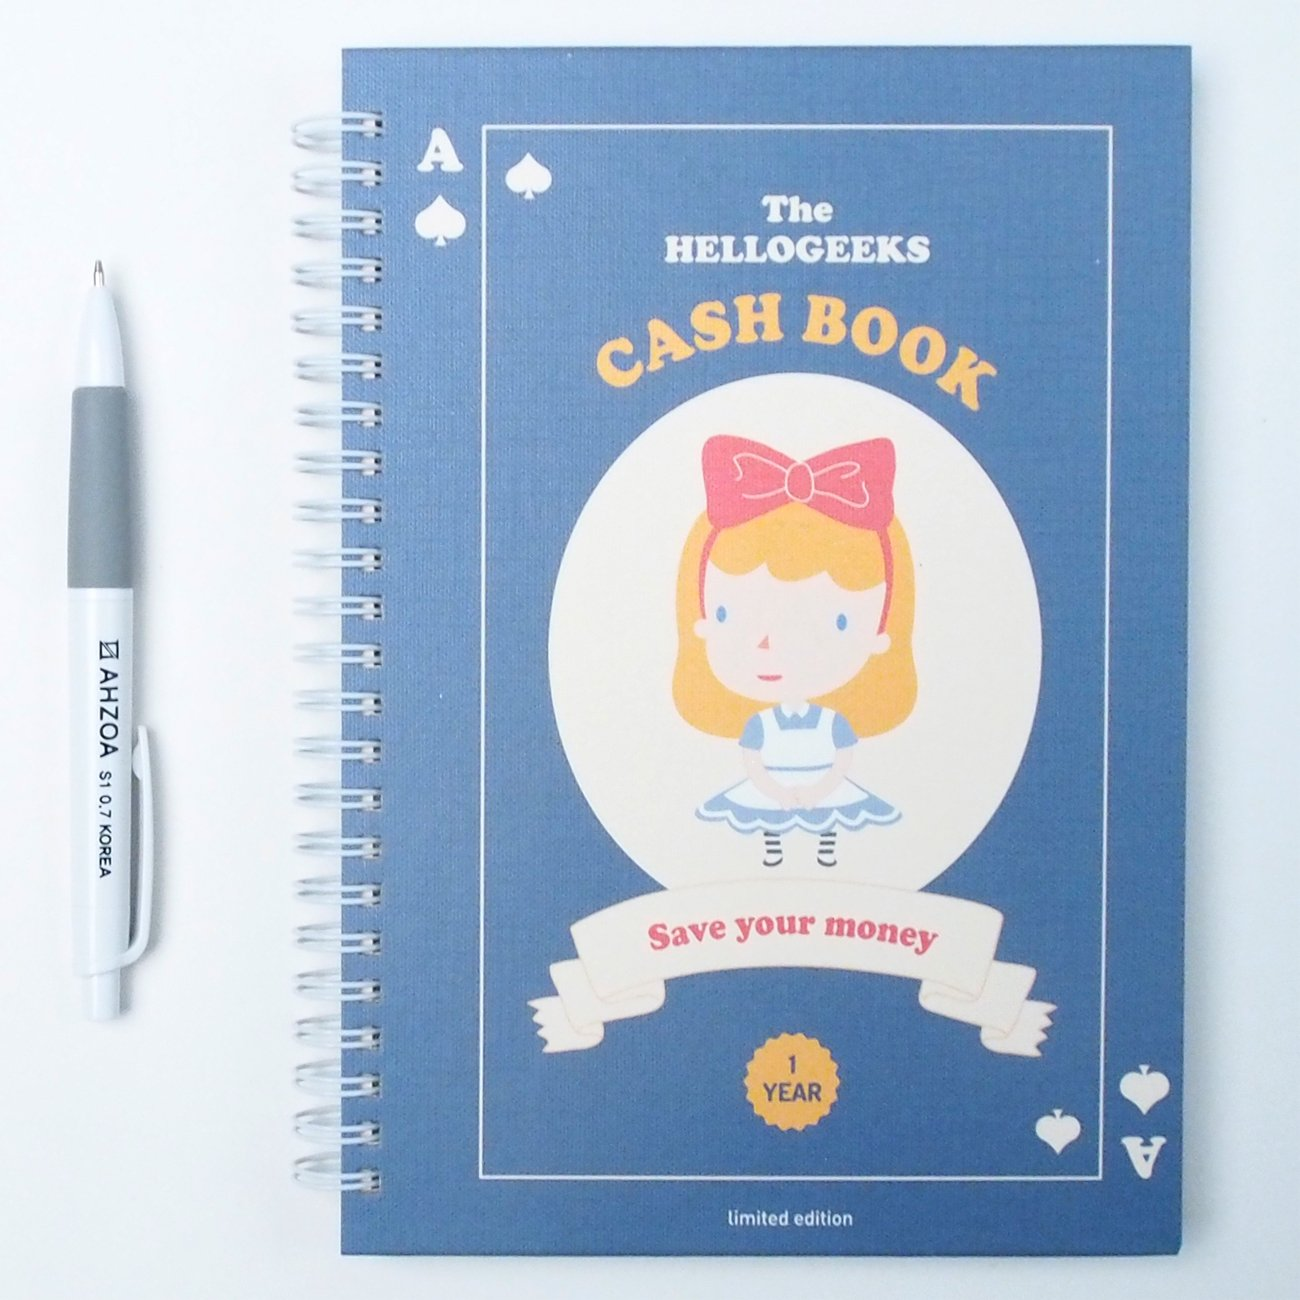 Financial Planner - Hellogeeks Cash Book for 1 Year with AHZOA Pencil, Account Book, Wirebound Type, Hardcover 176 Pages (Navy)